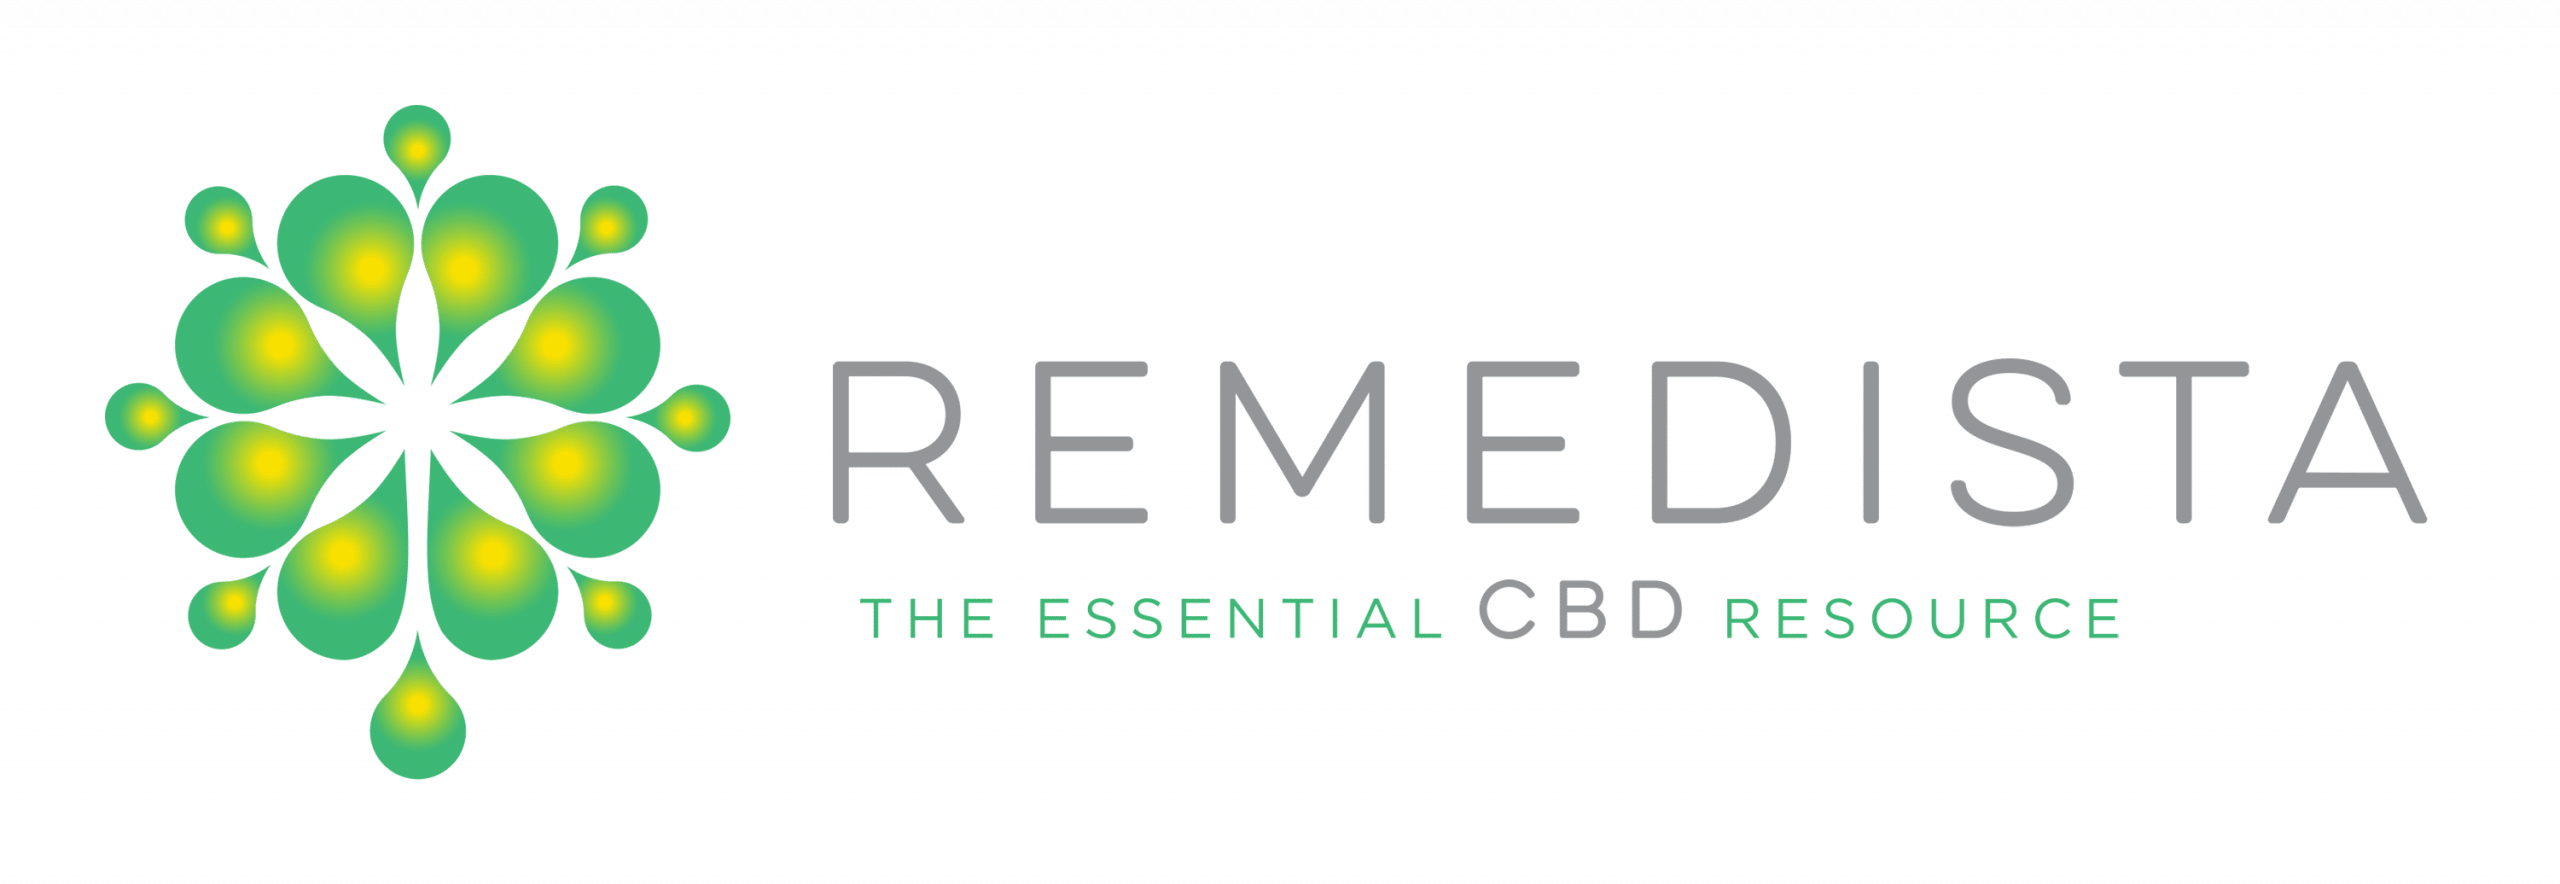 Welcome to Remedista CBD Store